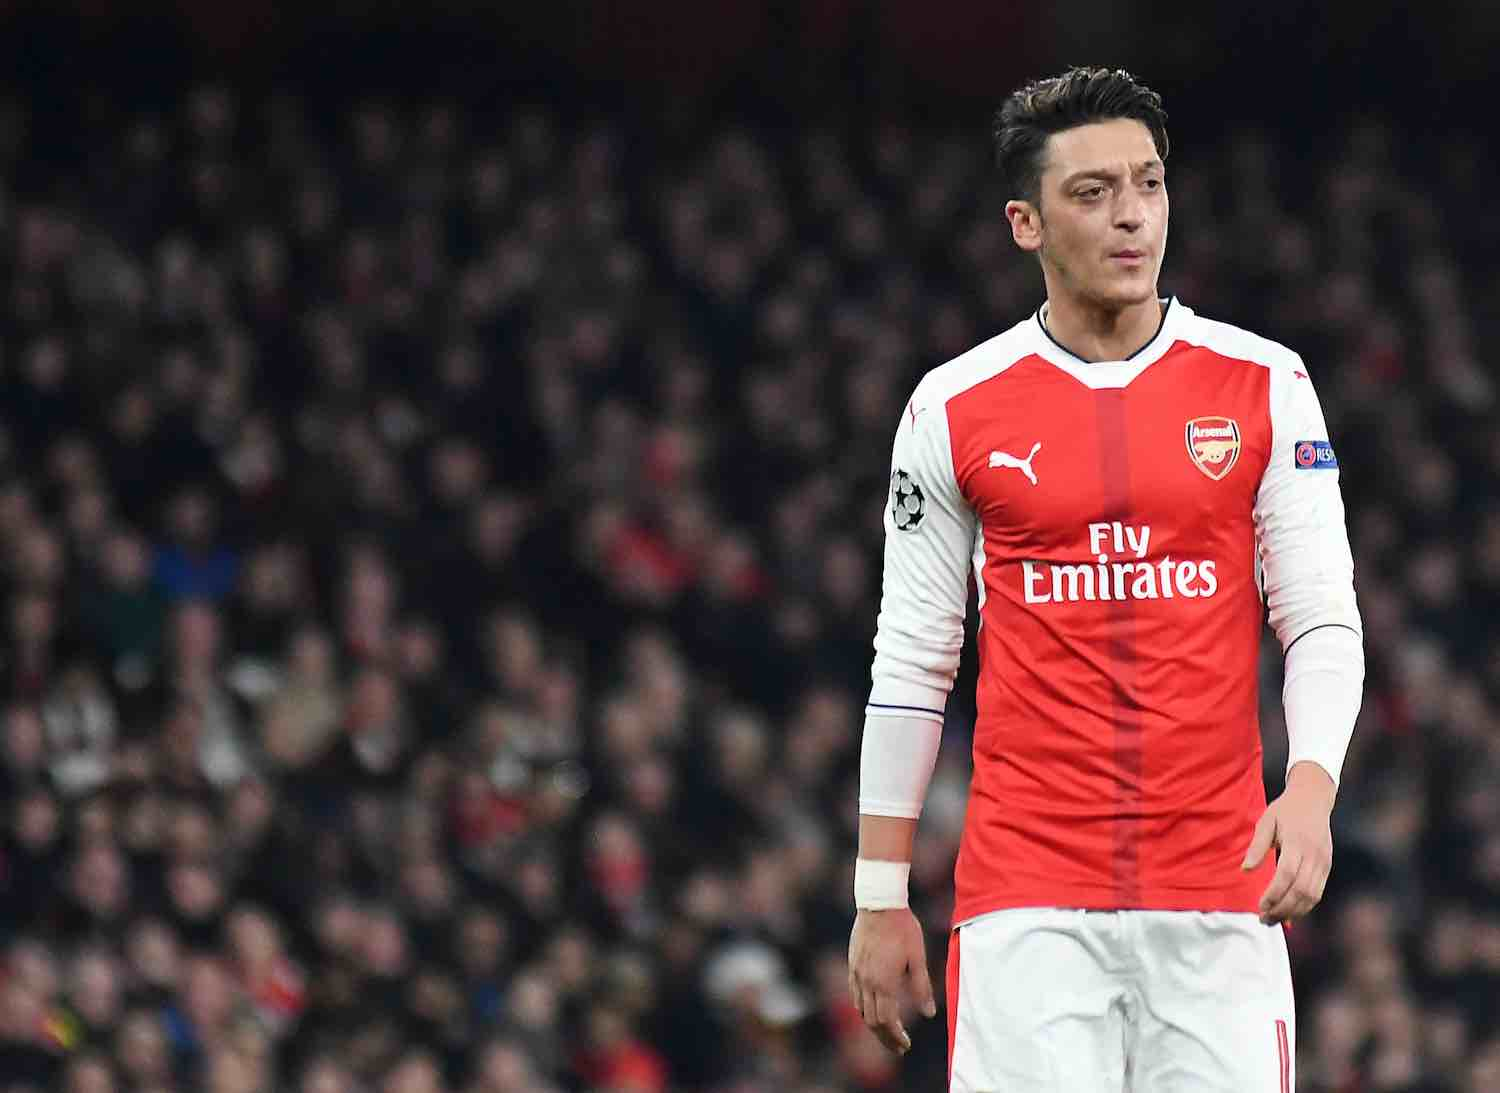 Mesut Ozil says he wants to stay at Arsenal | Off The Post